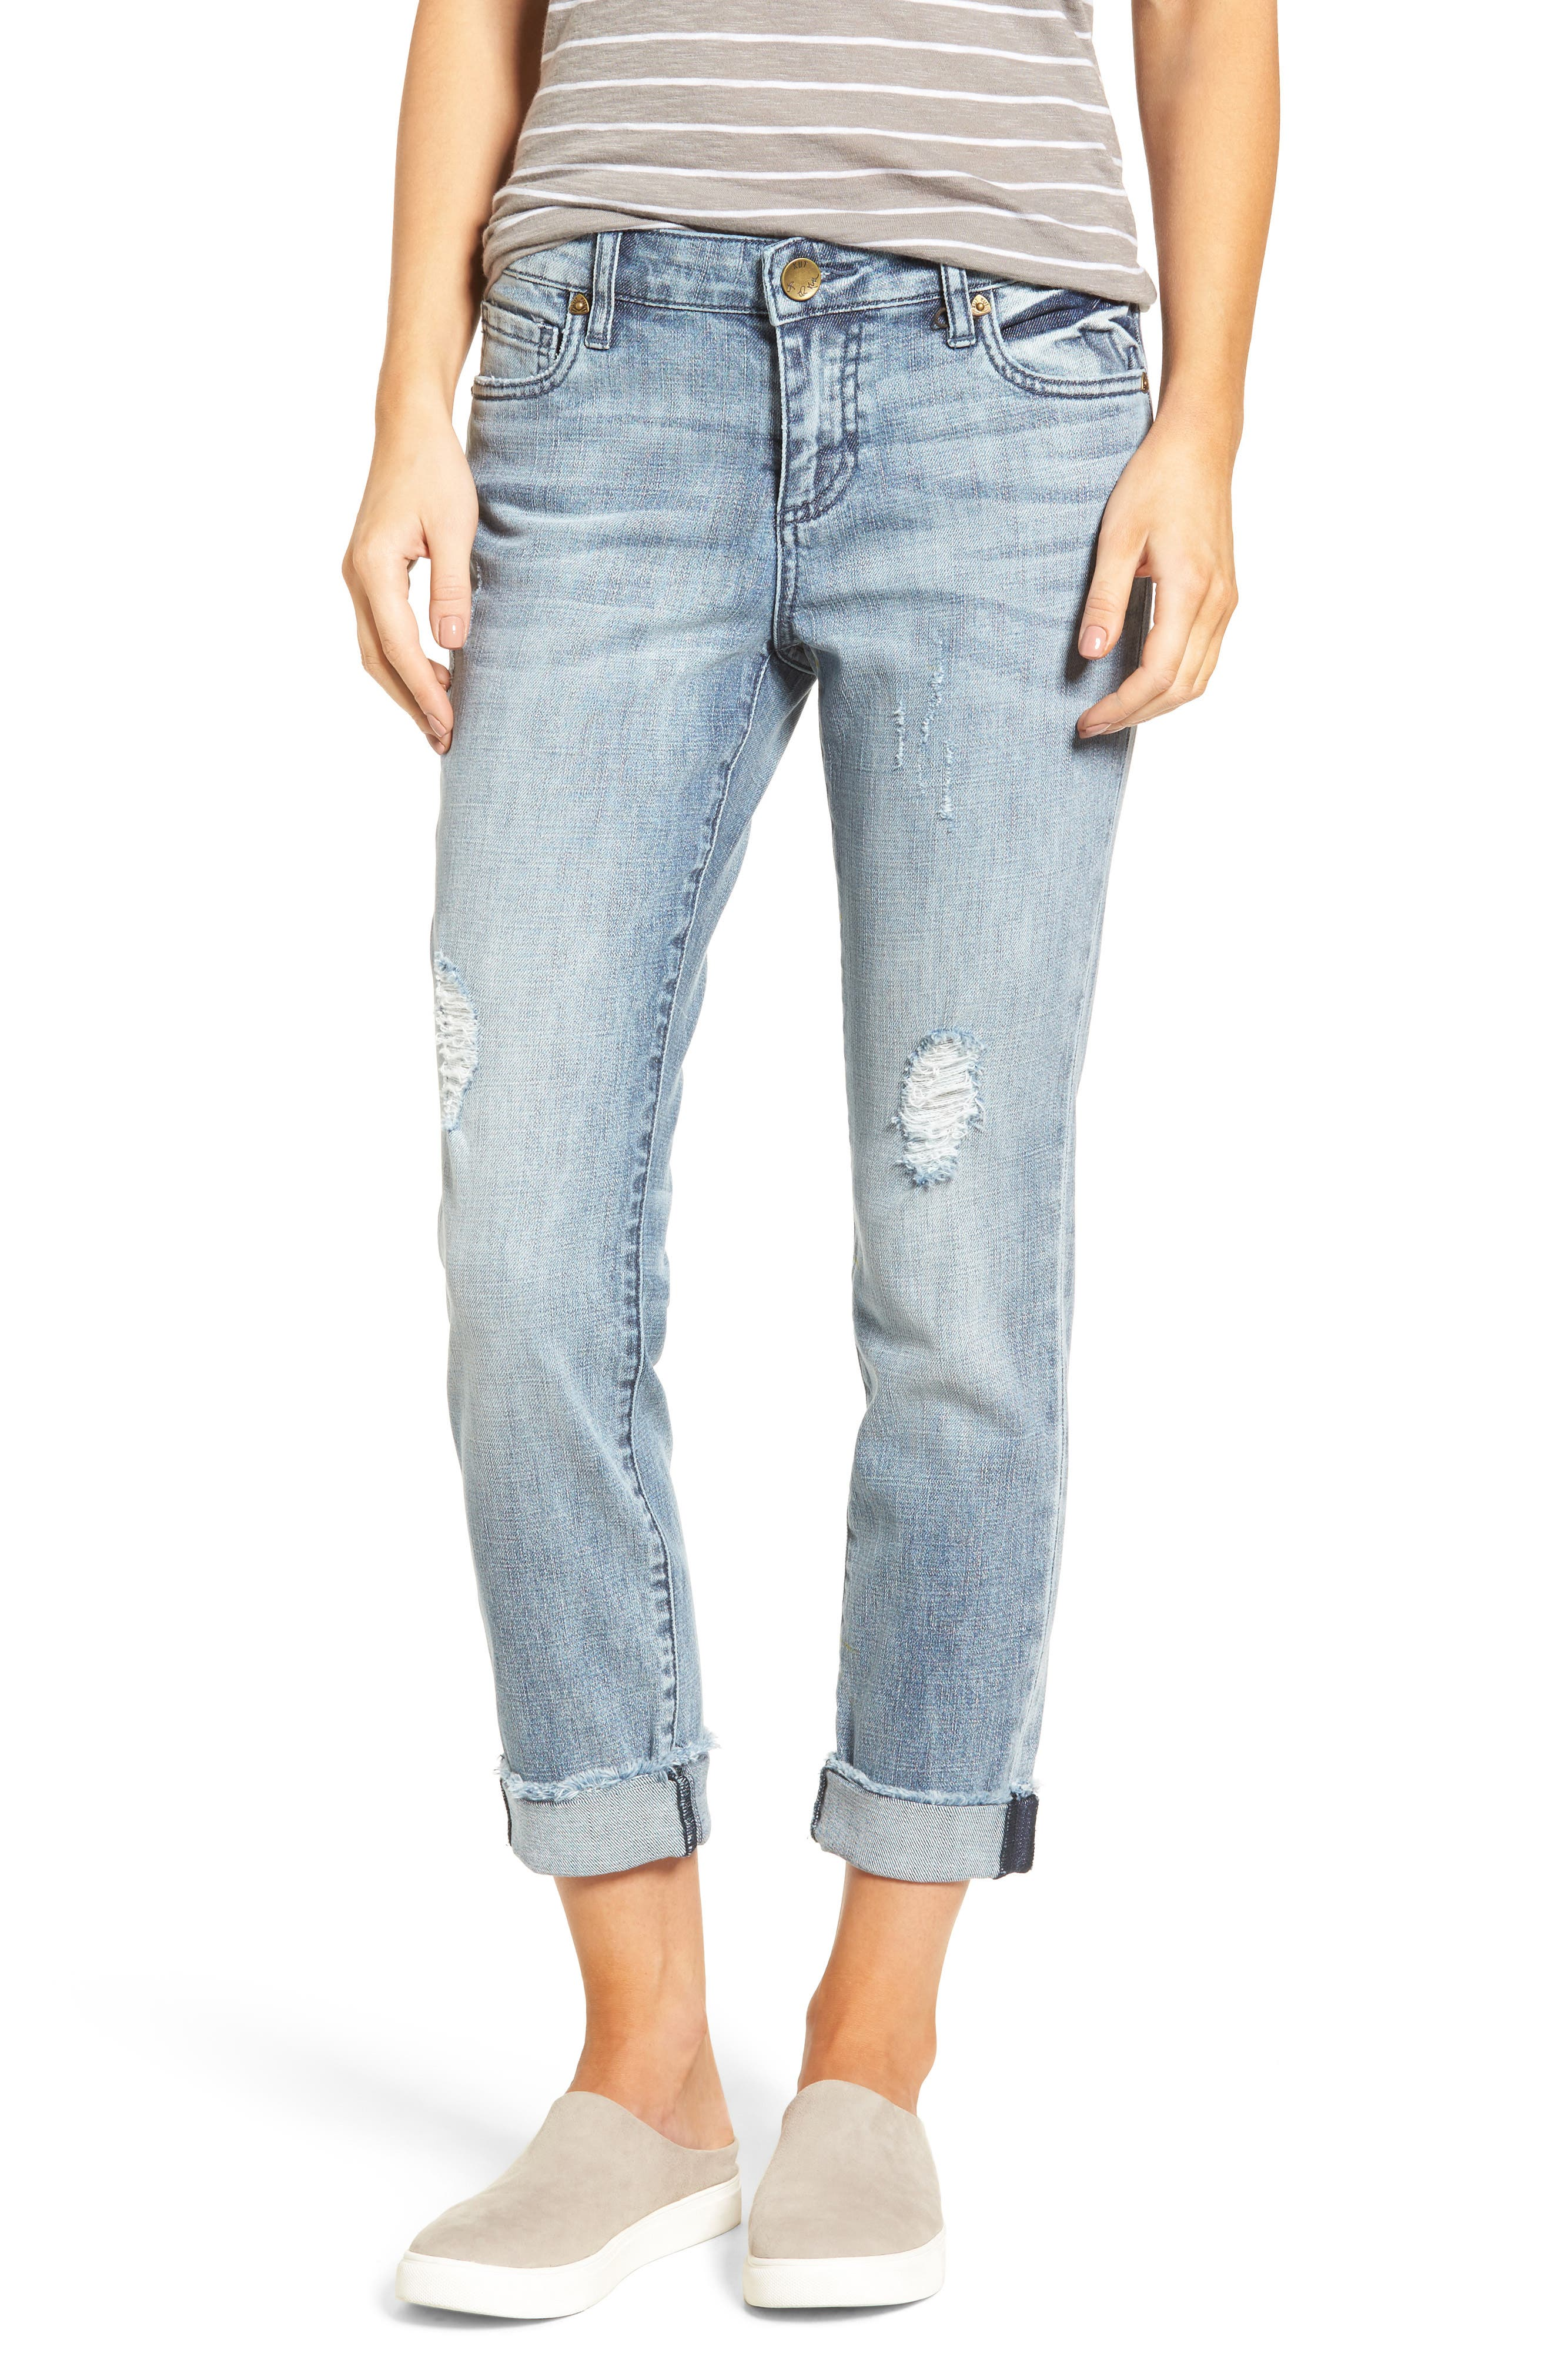 Main Image - KUT from the Kloth Catherine Distressed Frayed Hem Boyfriend Jeans (Heartiness)